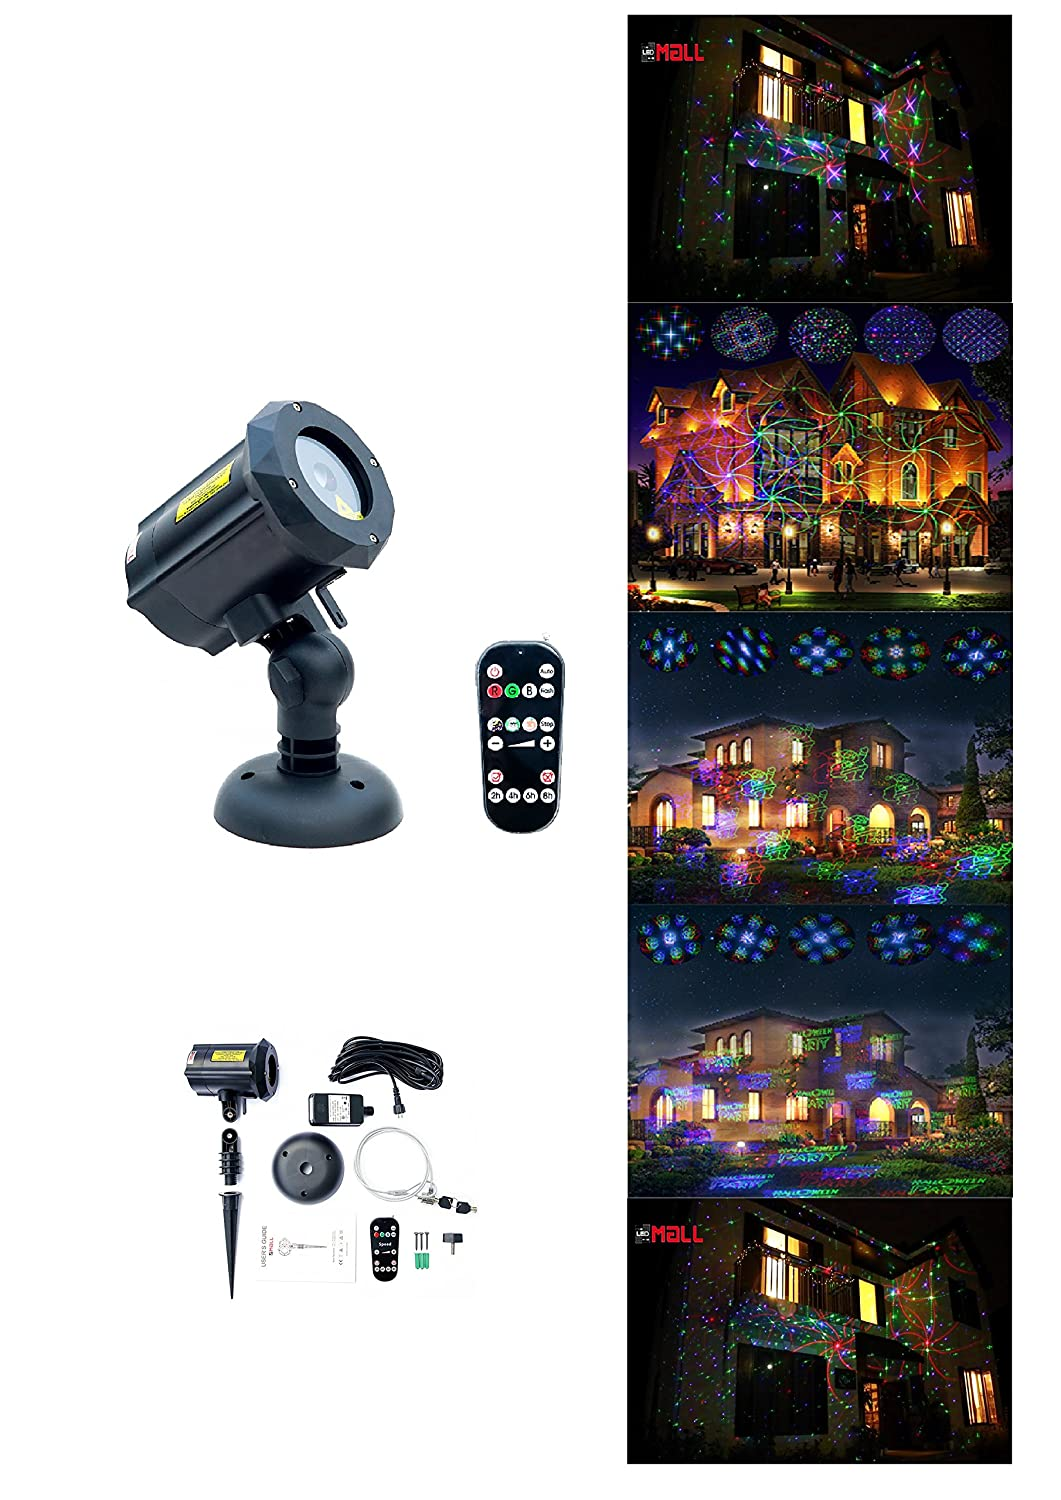 LedMAll® Motion Pattern Firefly 3 Models in 1 with18 Patterns RGB Outdoor Laser Garden and Christmas Lights with RF Remote Control and Security kit